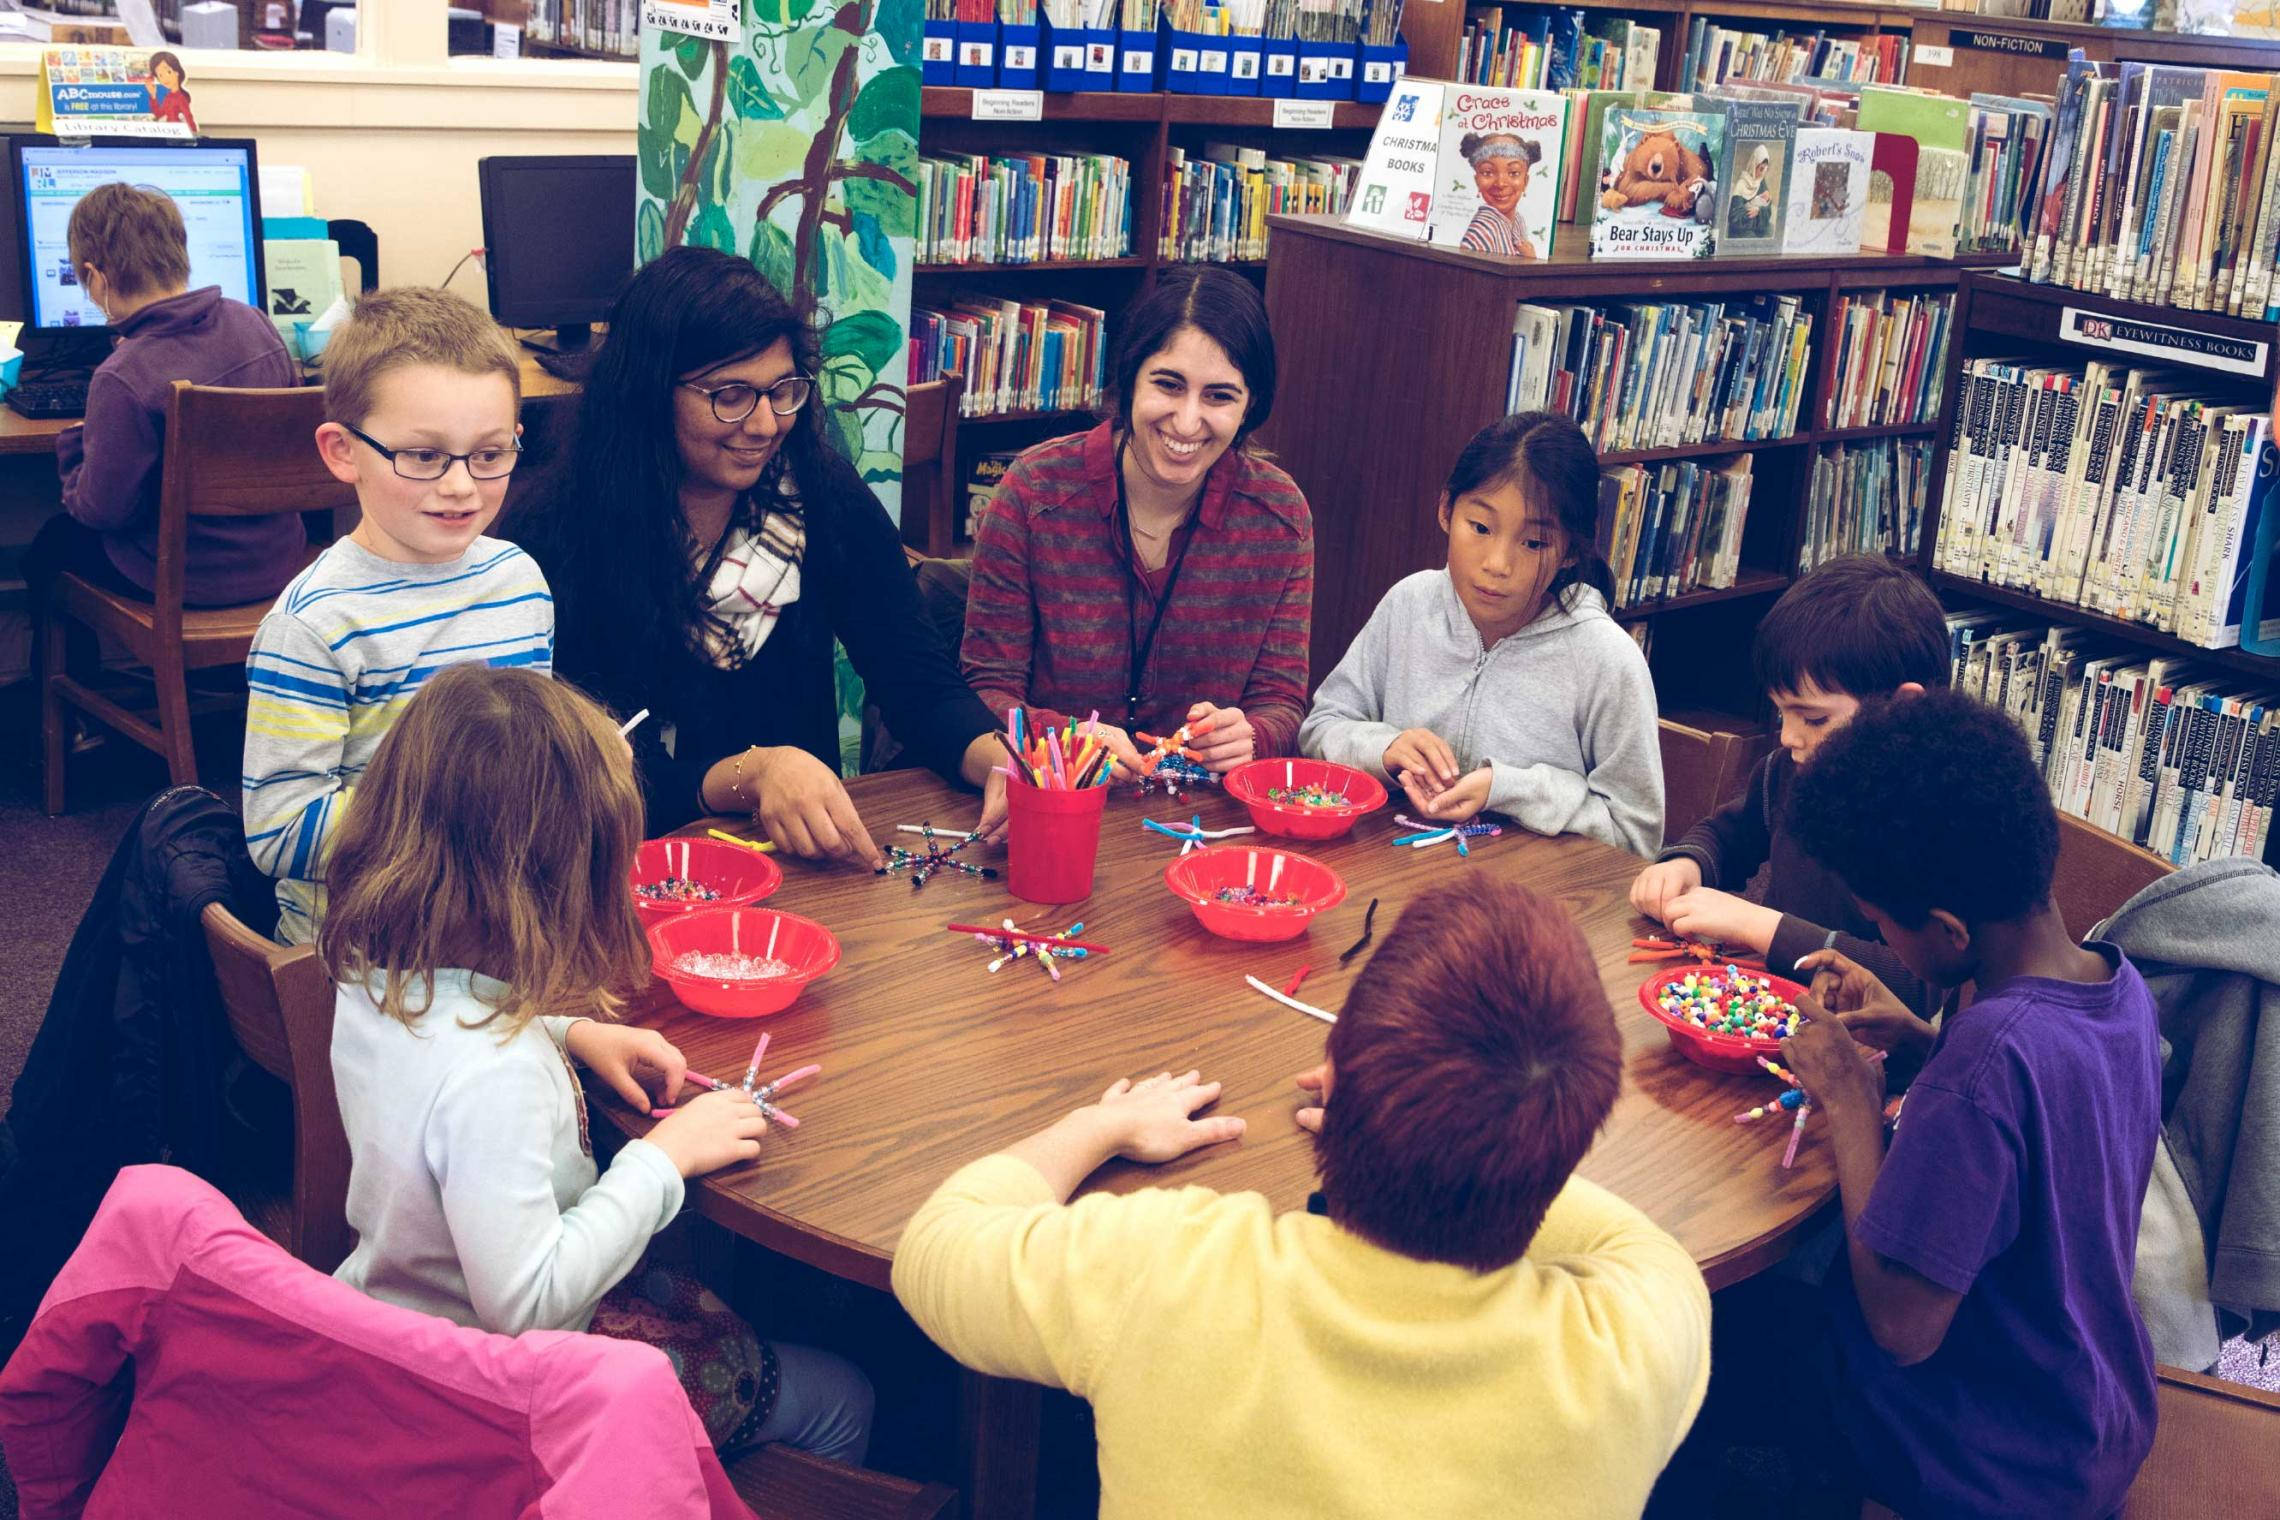 Lajja Patel, a third-year biology major, and Darya Tahan, a second-year student, work with children on creative projects, as well as help maintain the toy library.